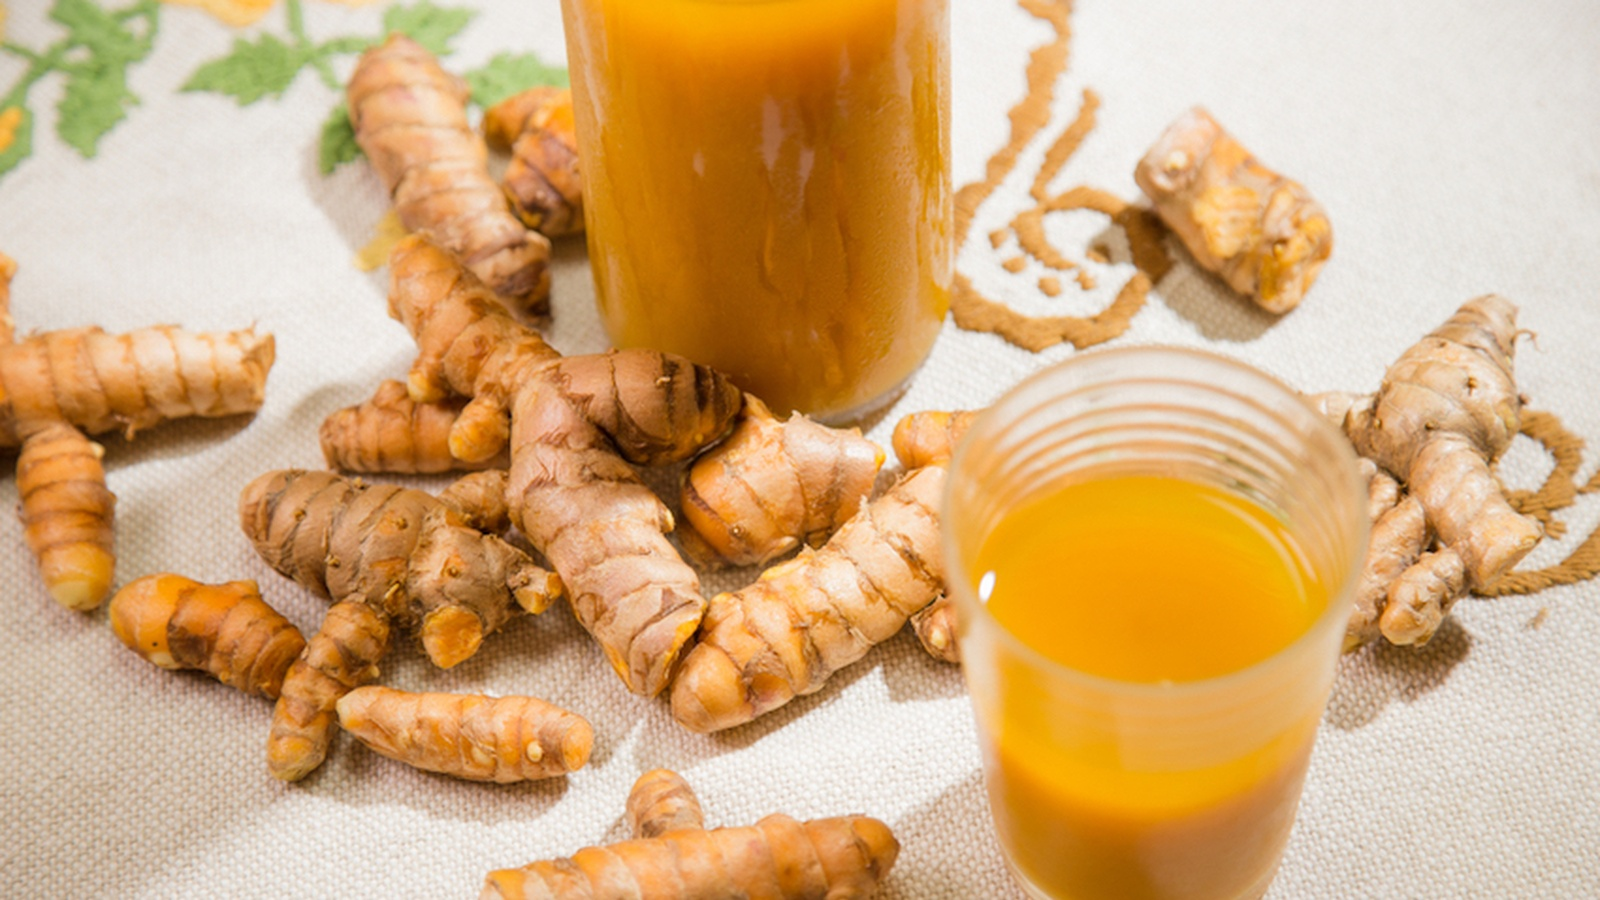 The Immune Boosting Tonic We're Drinking Daily: Jamu Juice